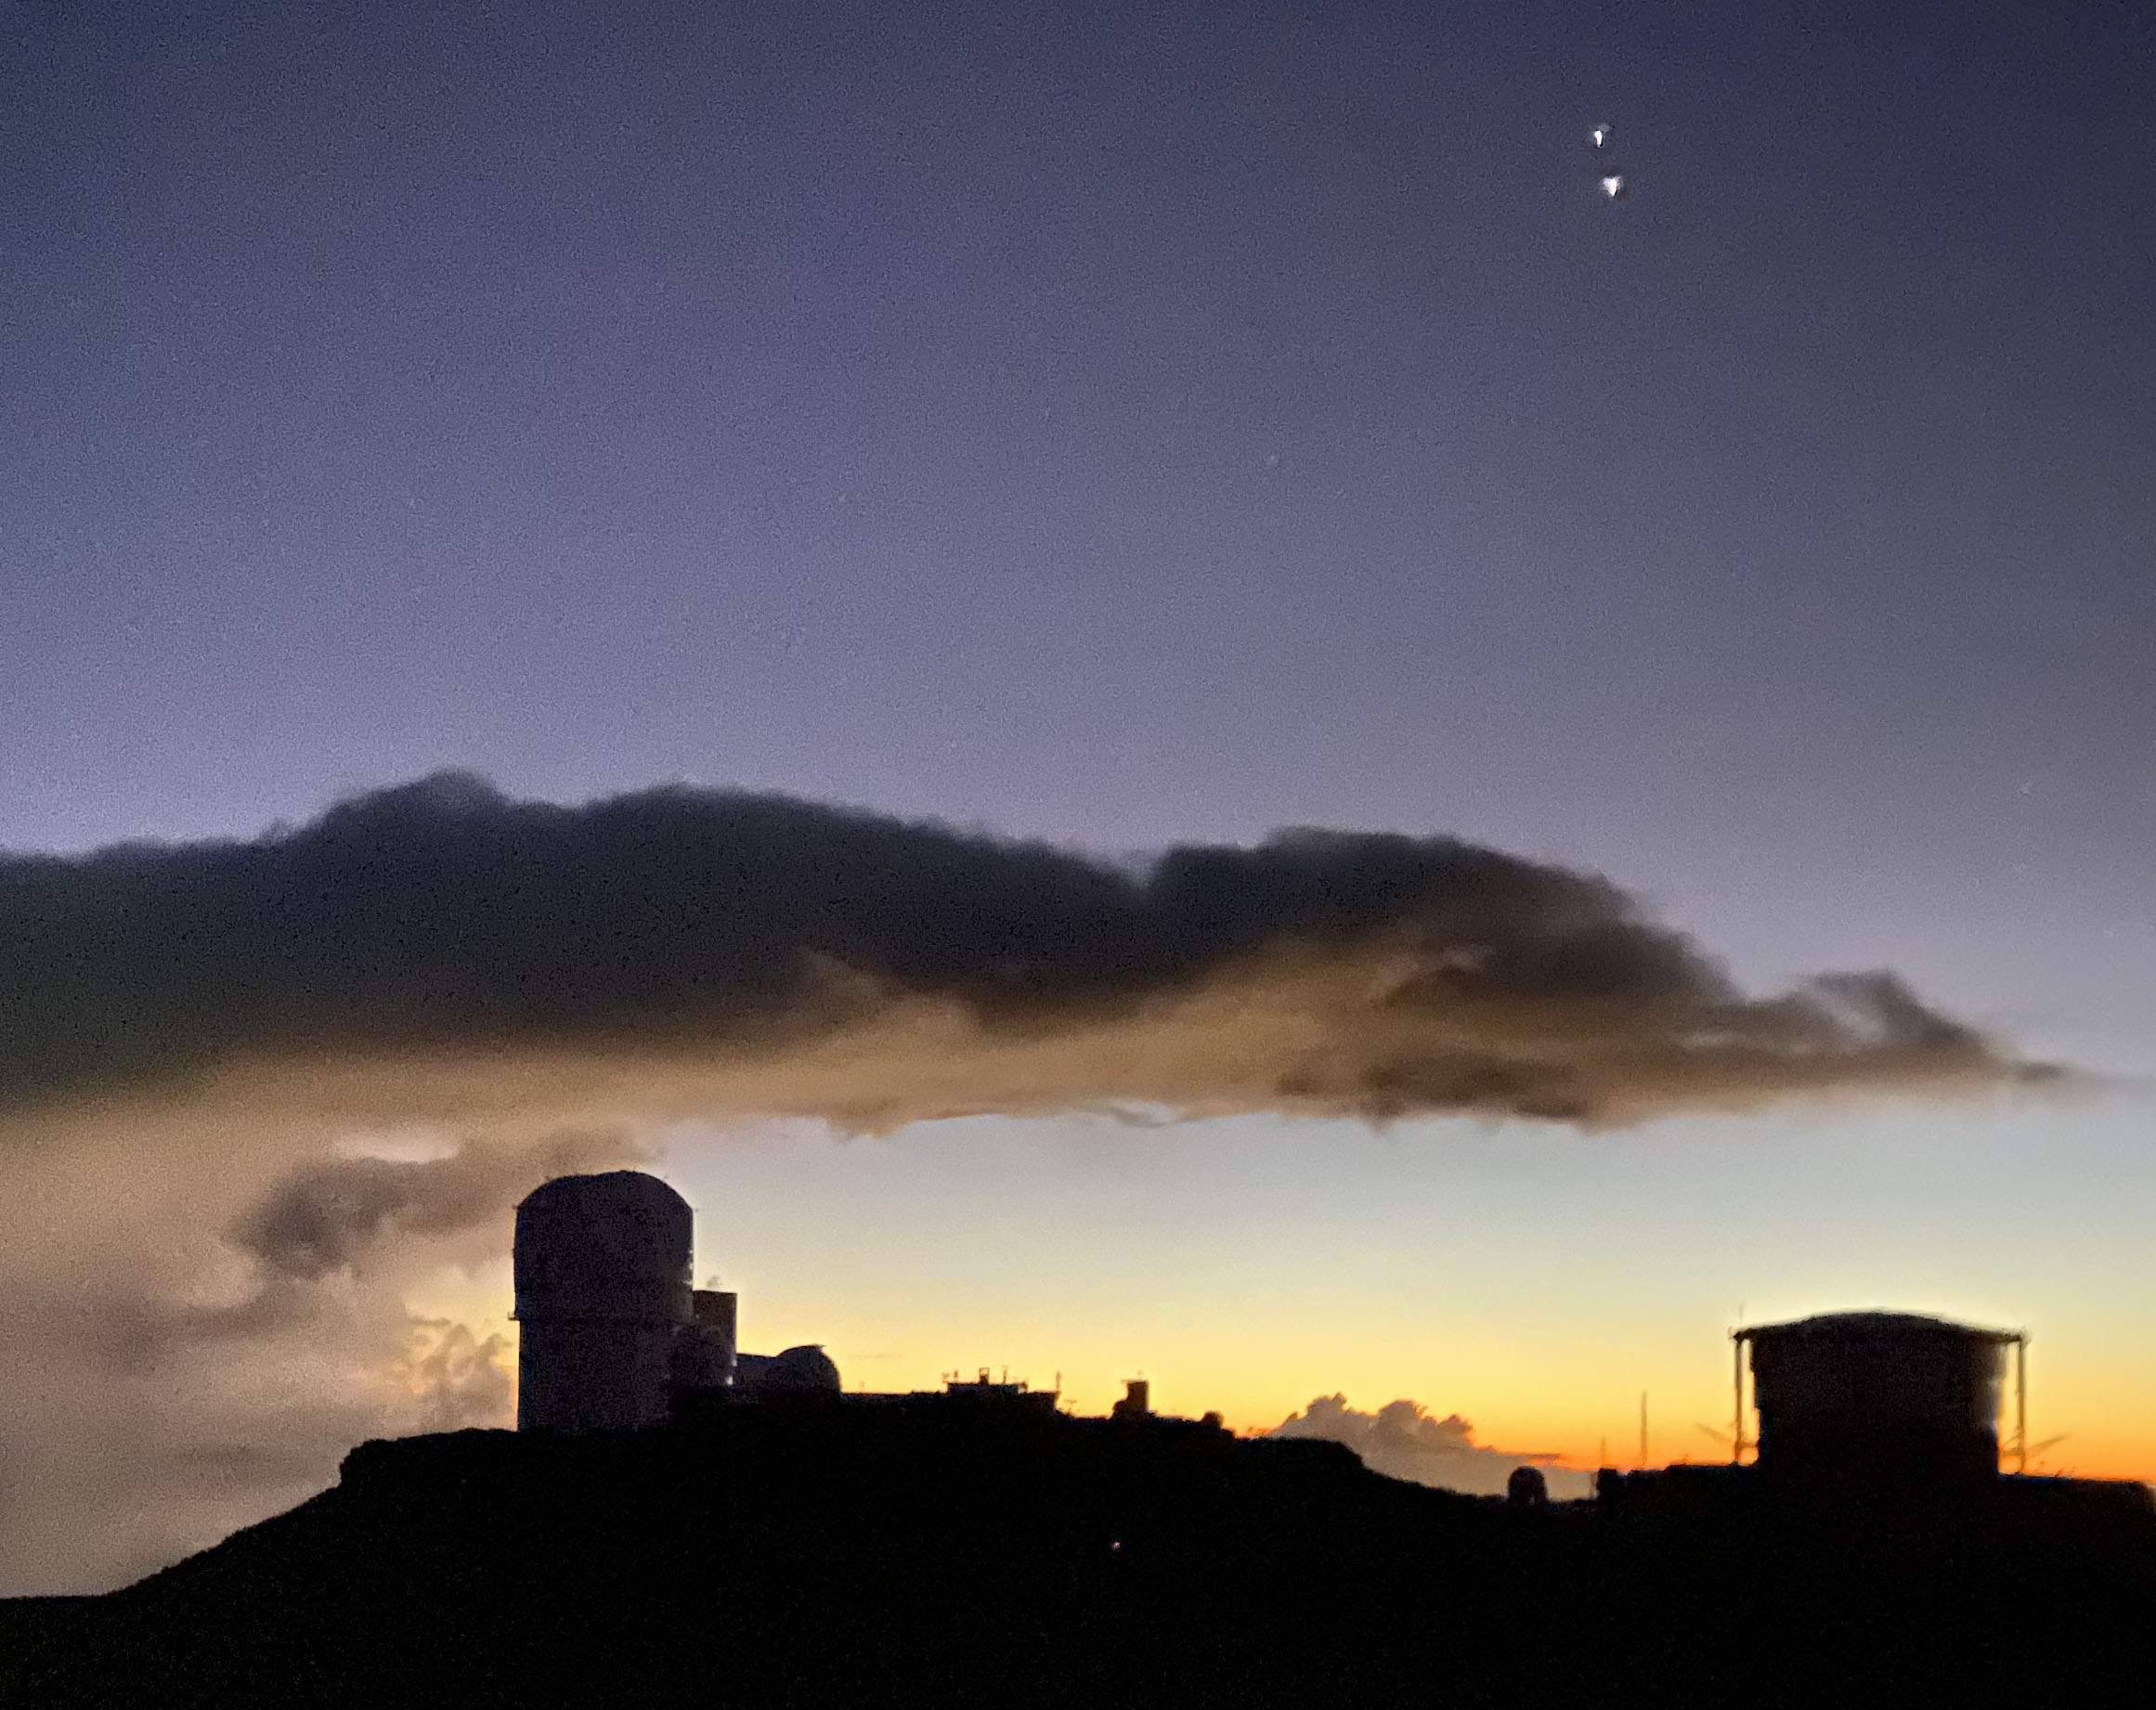 'Christmas Star' Shines Tonight with Jupiter and Saturn Last Appearing This Close 397 Years Ago